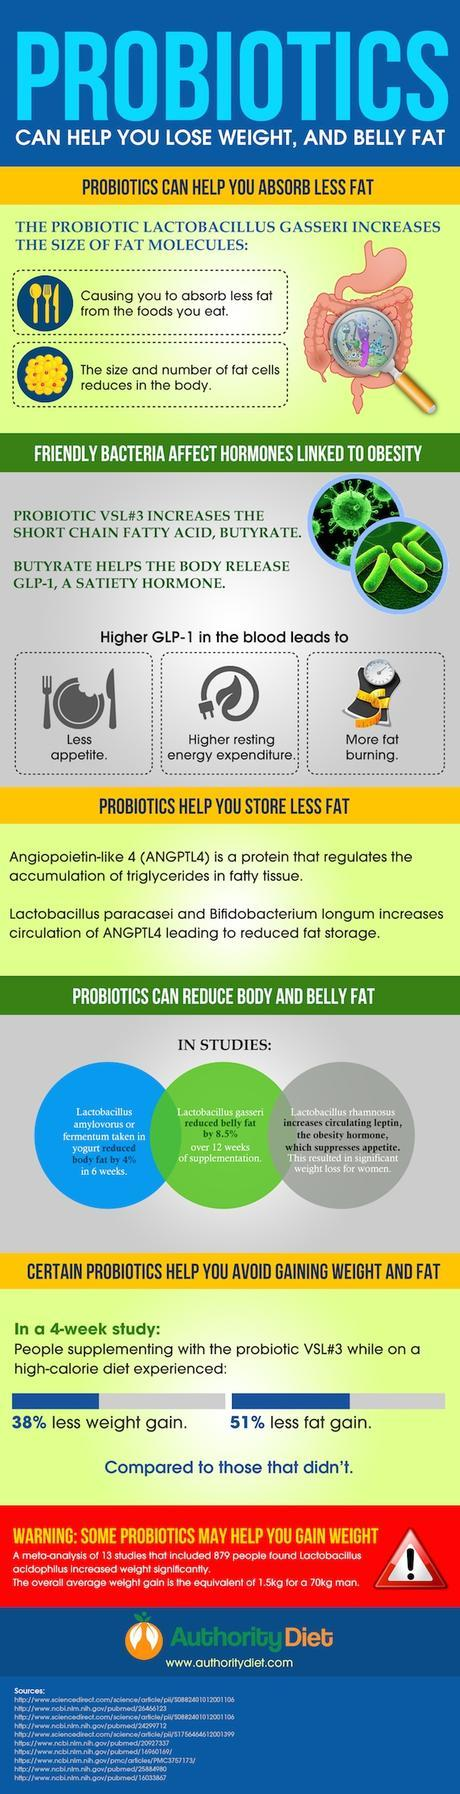 Can Probiotics Help with Weight Loss, and Burn Belly Fat?